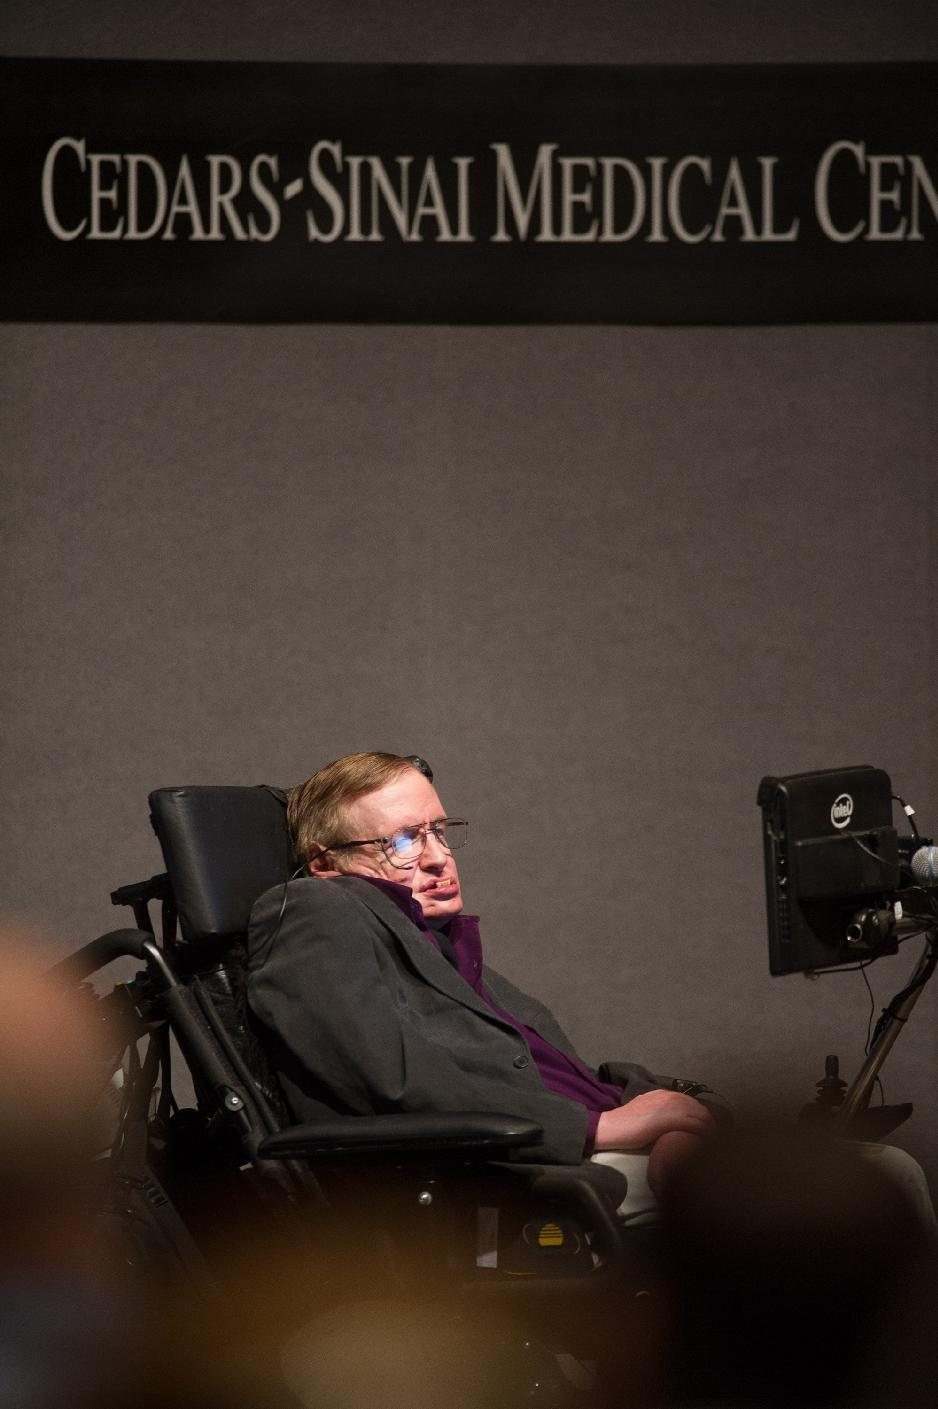 """In this photo provided by Cedars-Sinai, British cosmologist Stephen Hawking, who has motor neuron disease, gives a talk titled """"A Brief History of Mine,"""" to workers at Cedars-Sinai Medical Center in Los Angeles, on Tuesday, April 9, 2013. (AP Photo/Cedars-Sinai, Eric Reed)"""